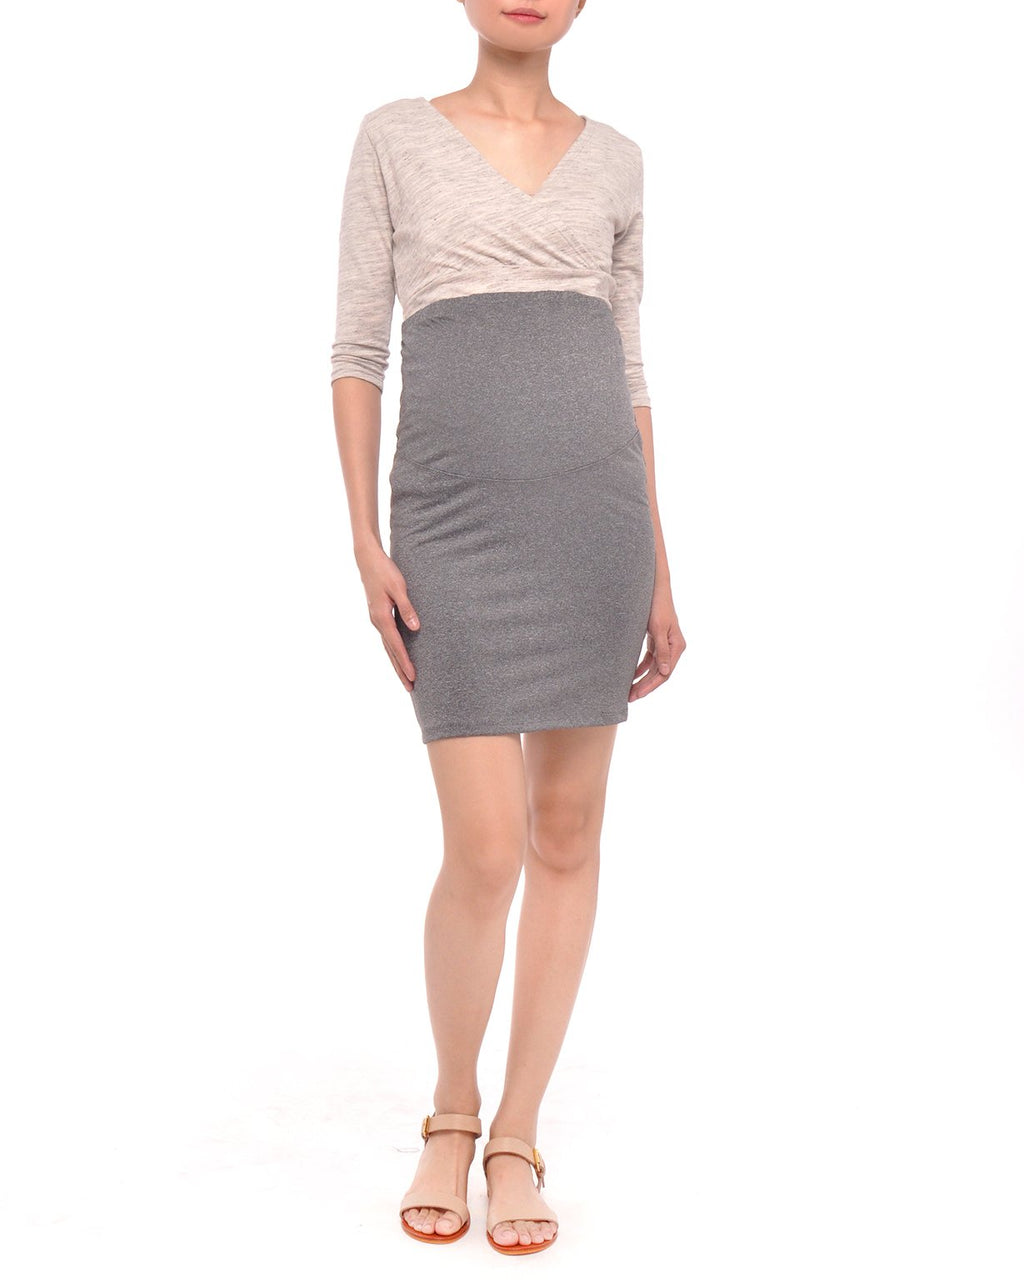 Maternity Skirt Charcoal Gray